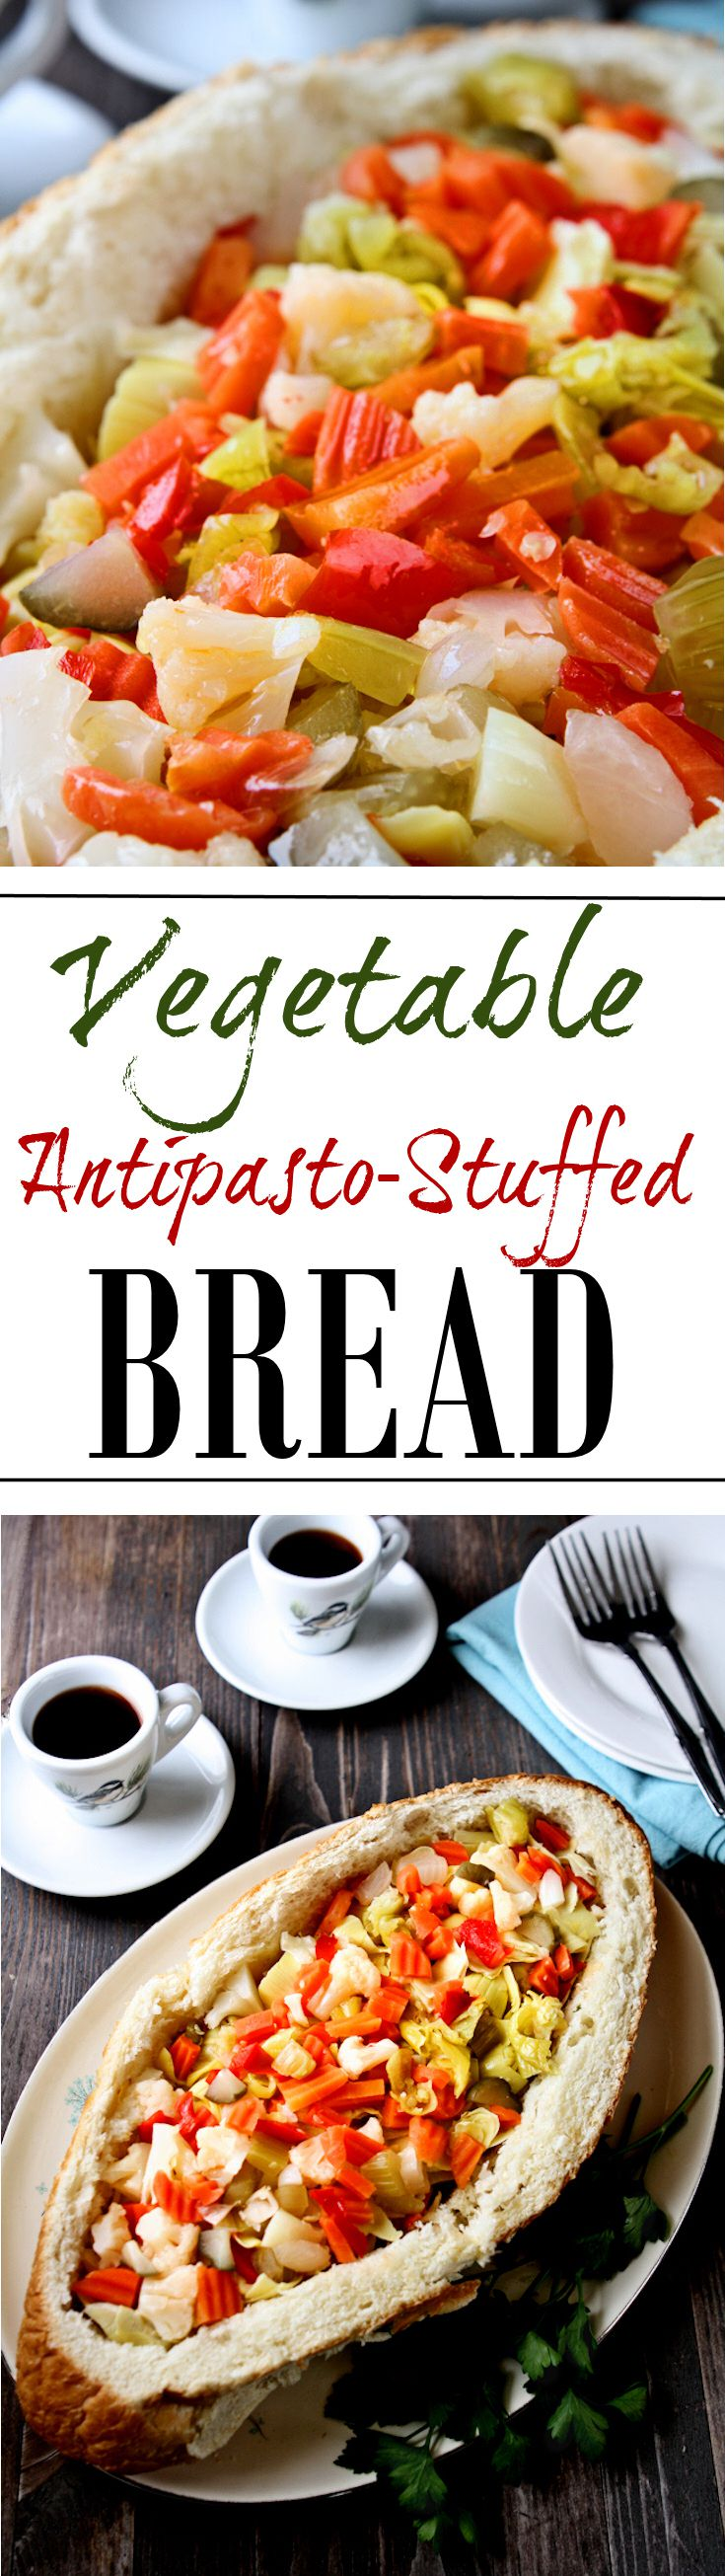 Vegetable Antipasto-Stuffed Bread | This is such a tasty vegetarian antipasto stuffed bread. Plus, you can pull this delicious appetizer together in 30 minutes or less! | heavenlyhomecooking.com